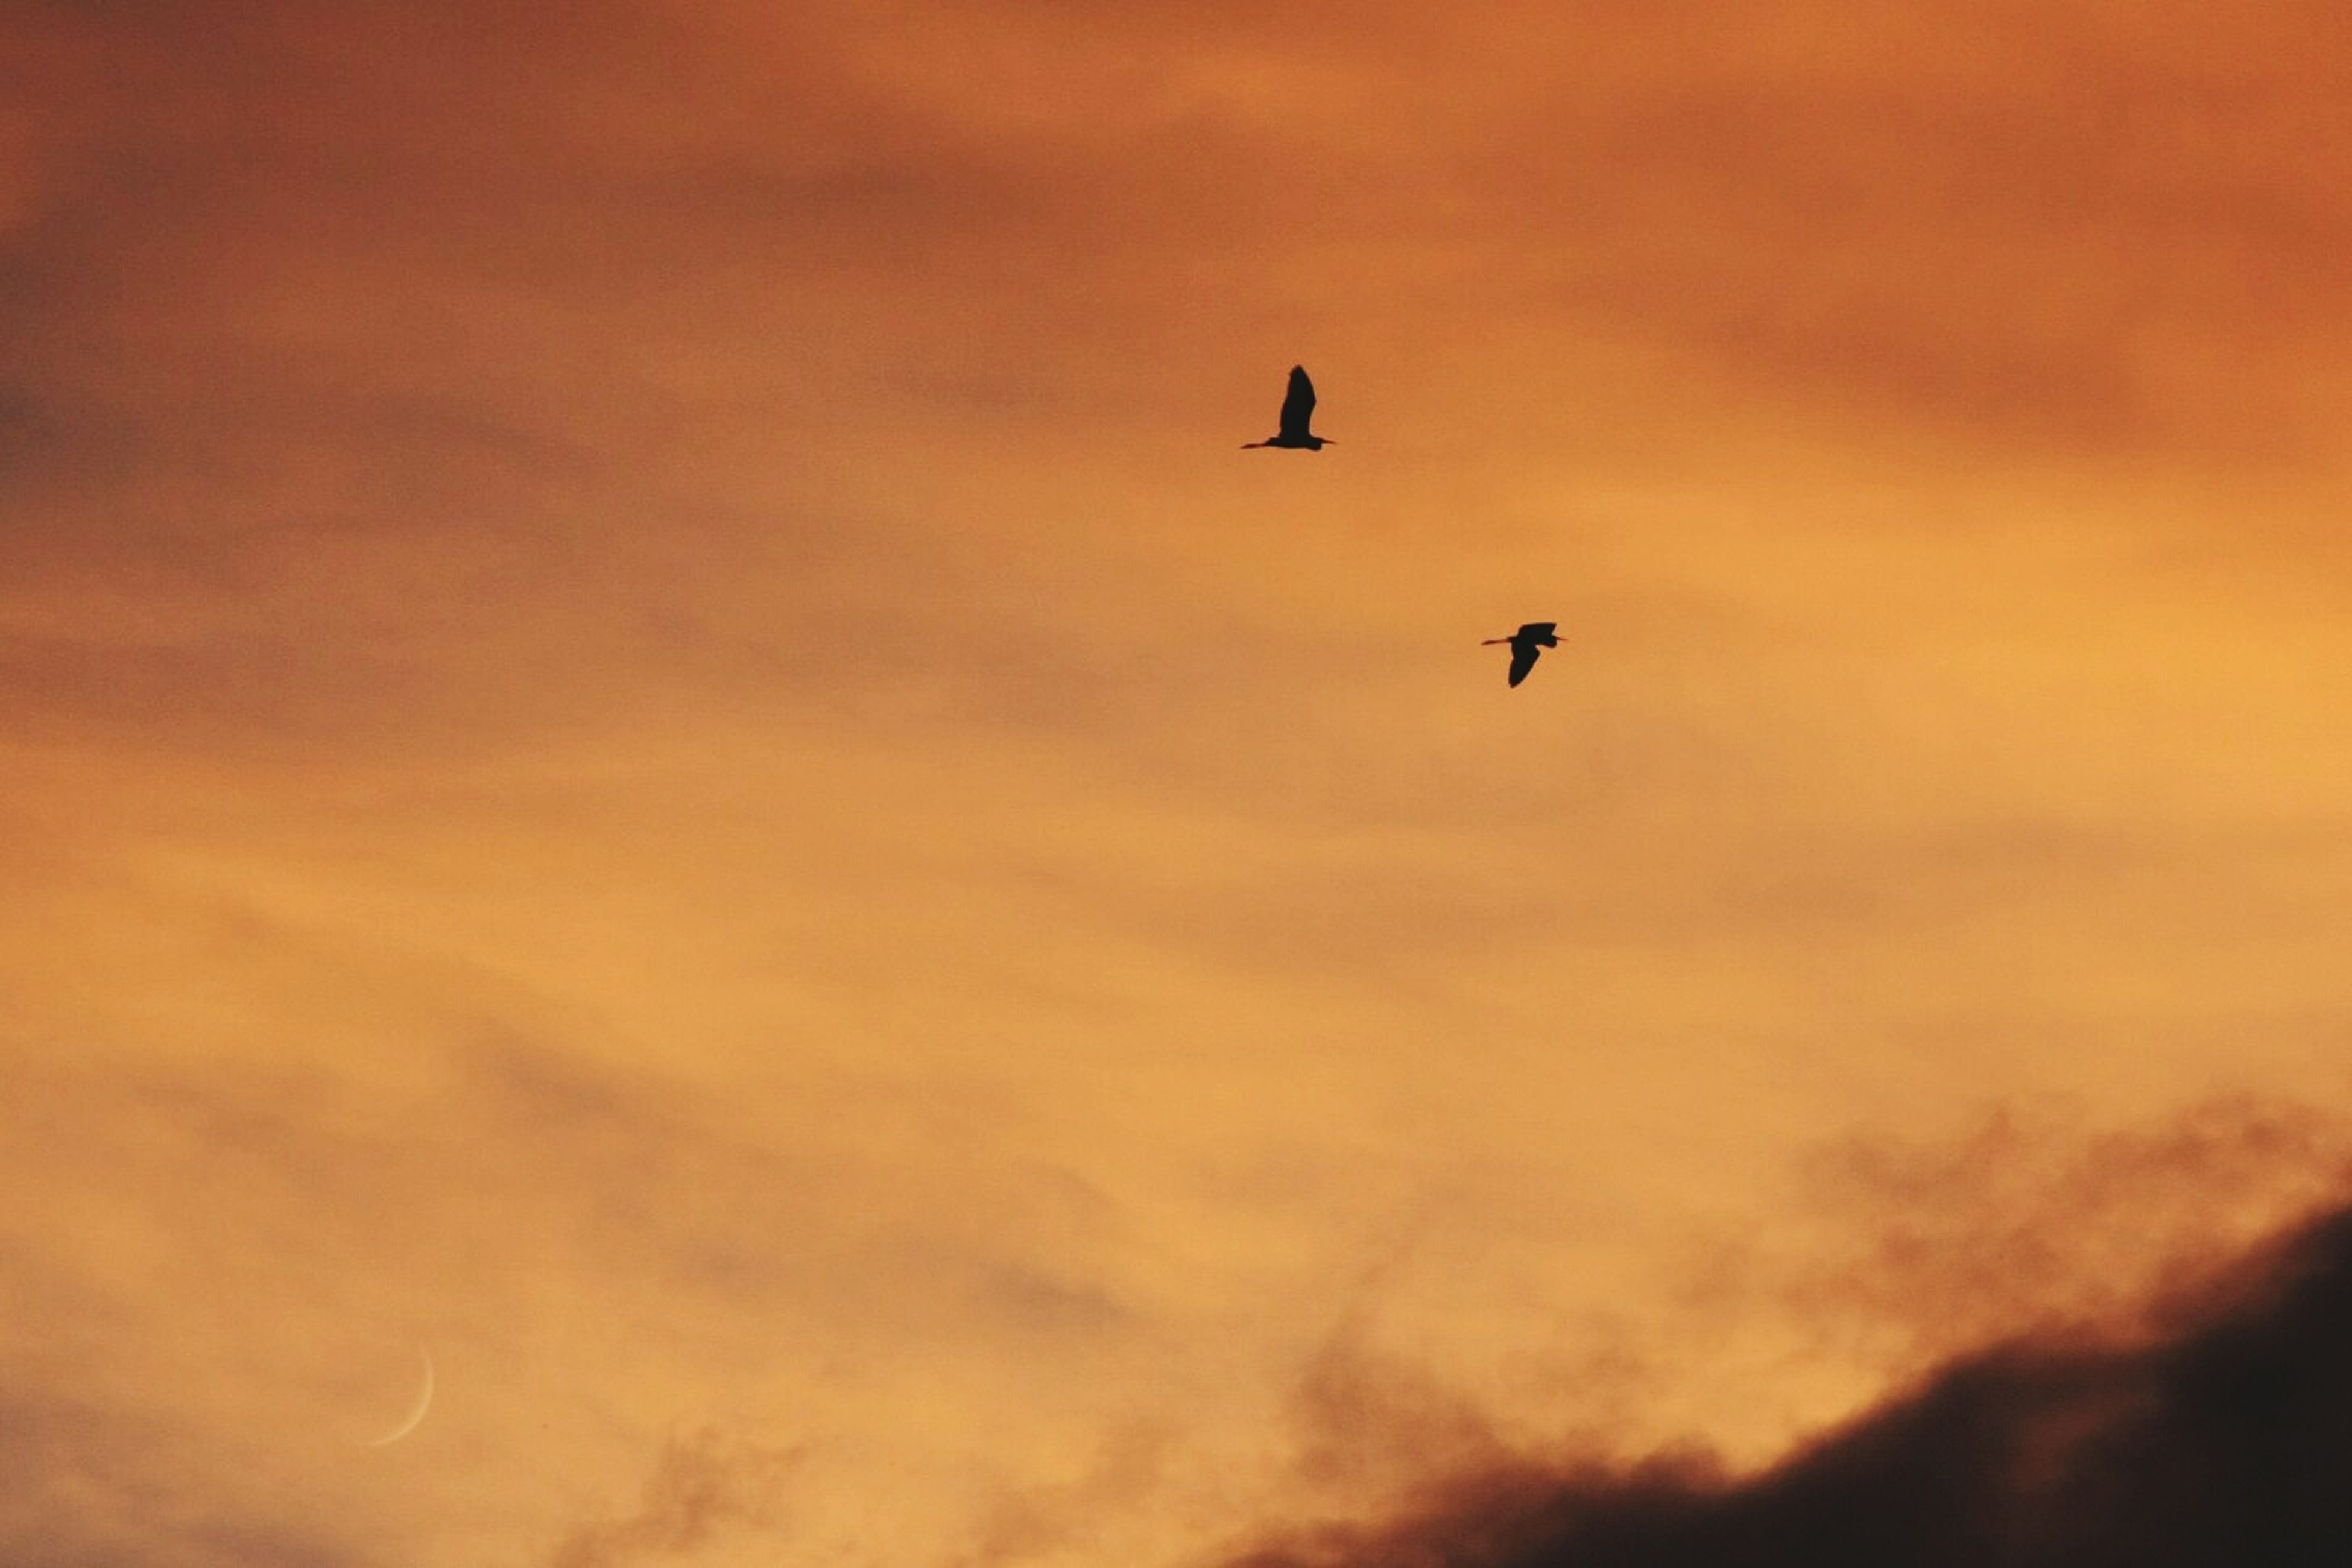 flying, bird, animal themes, sky, low angle view, animals in the wild, sunset, wildlife, cloud - sky, one animal, mid-air, beauty in nature, silhouette, nature, scenics, cloudy, tranquility, orange color, cloud, spread wings